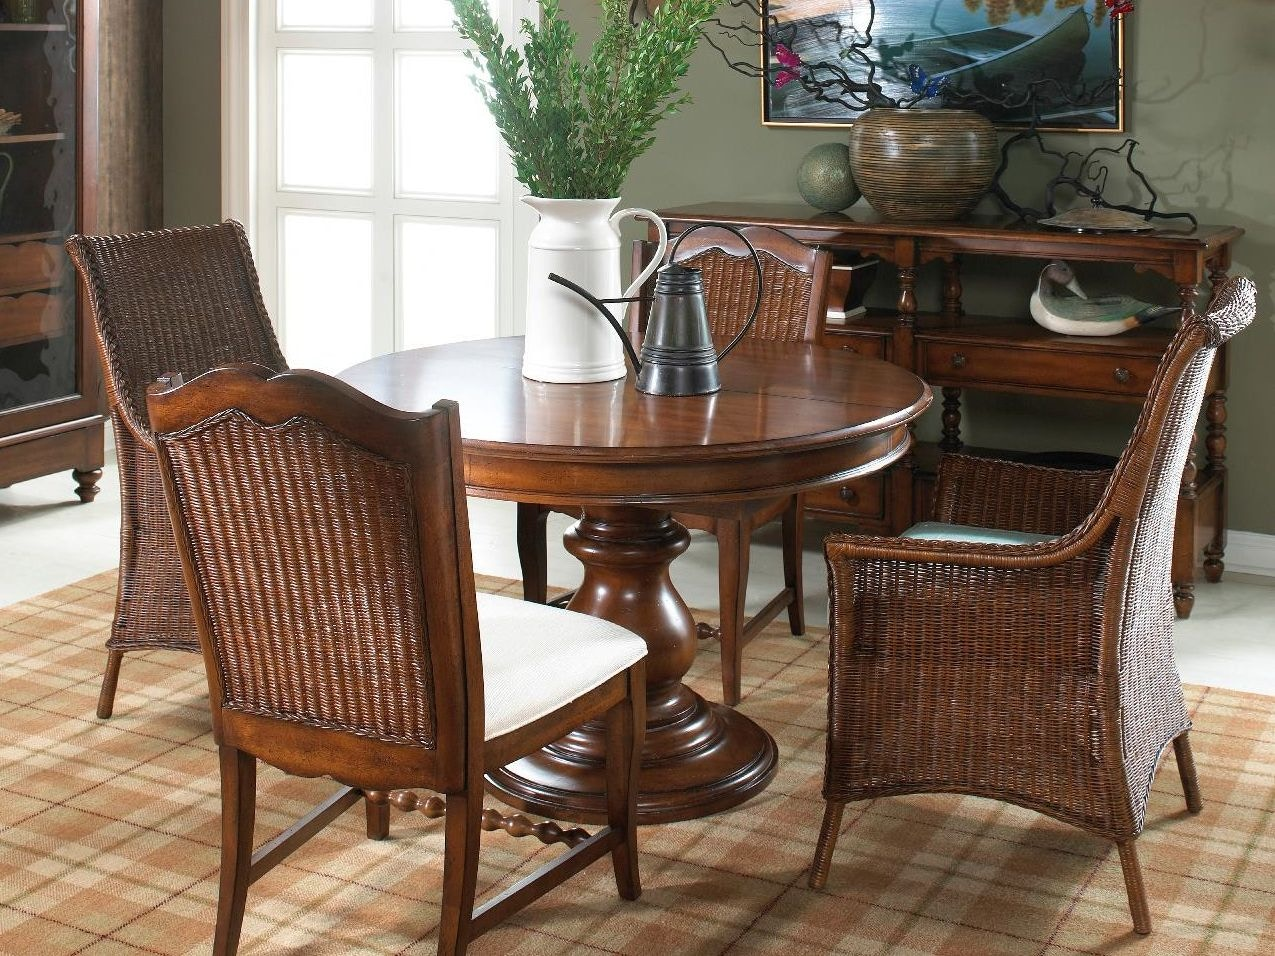 arlington round sienna pedestal dining room table w chestnut finish. 1050-810/811. round dining table arlington sienna pedestal room w chestnut finish e